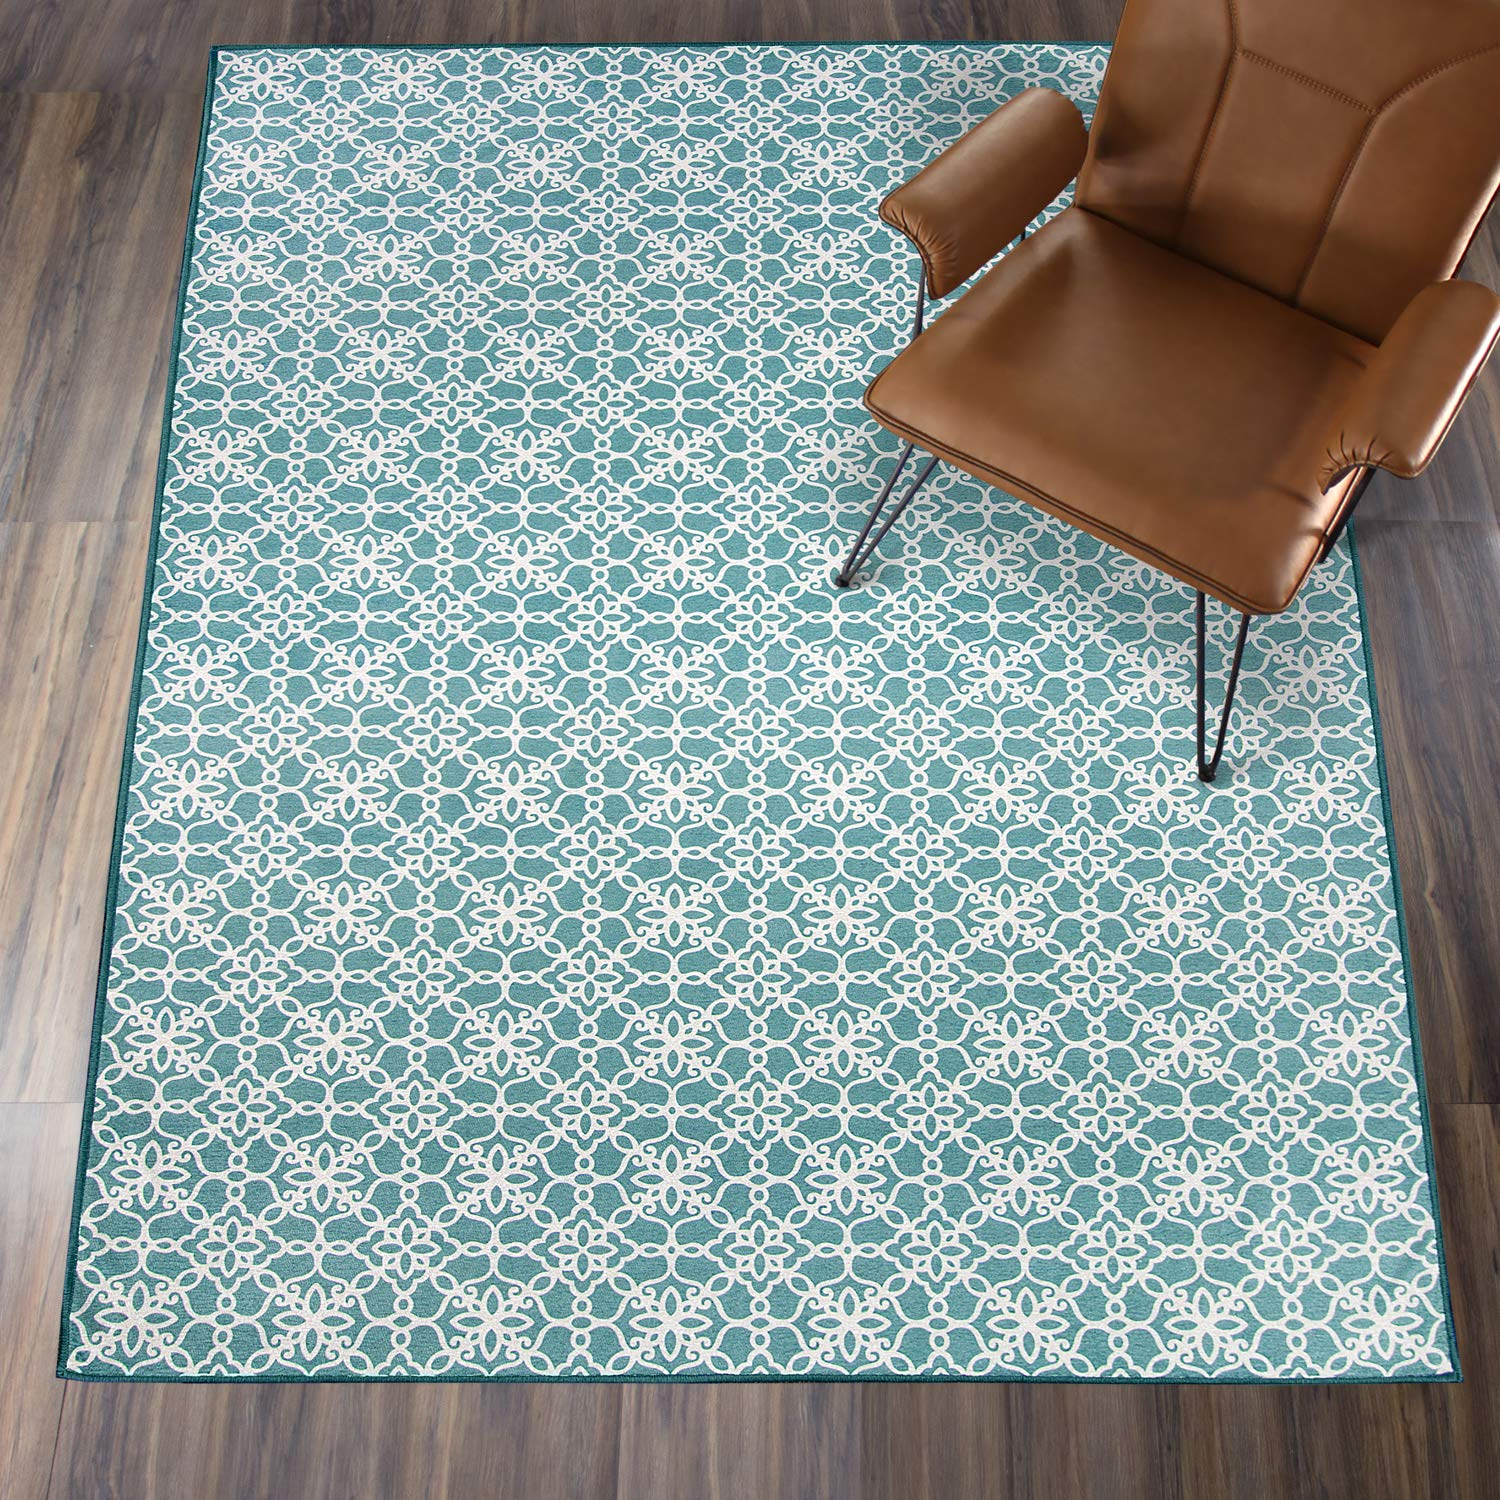 36x60 Cover and Pad Runner Rug 2pc Set RUGGABLE Washable Indoor//Outdoor Stain Resistant 3x5 Floral Tiles Aqua Blue and White